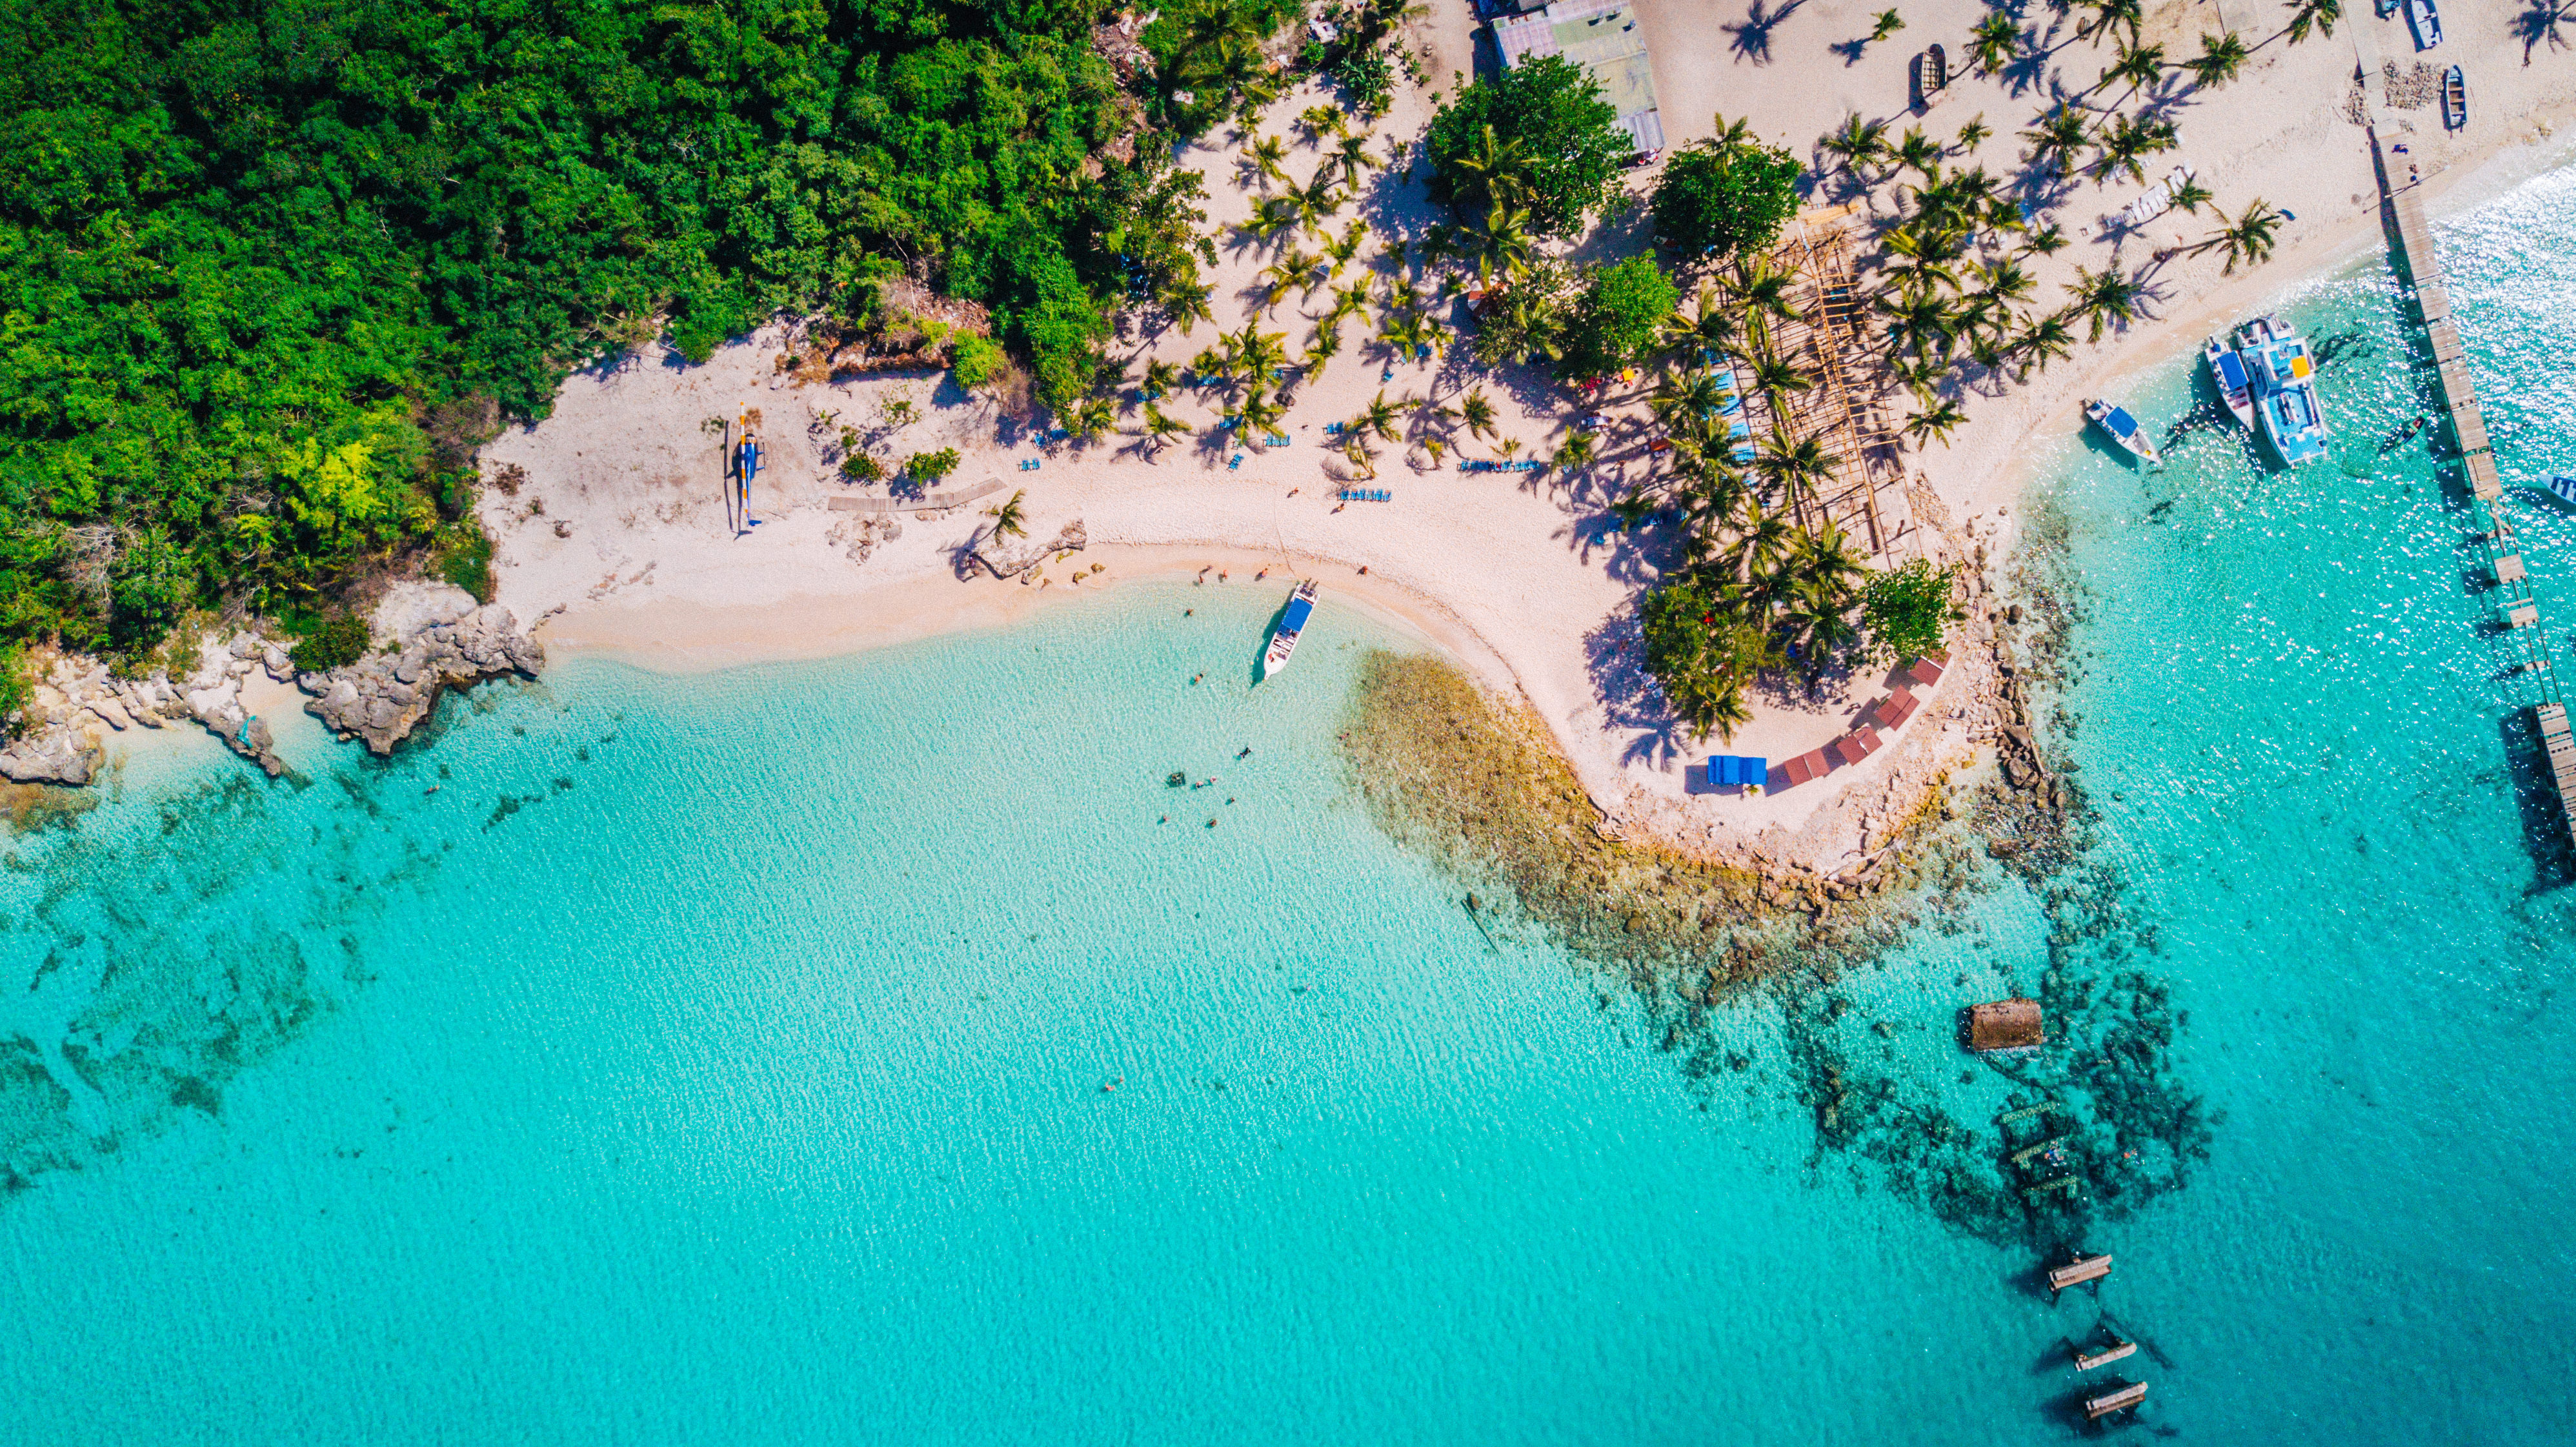 Must-See Tourist Spots in Punta Cana